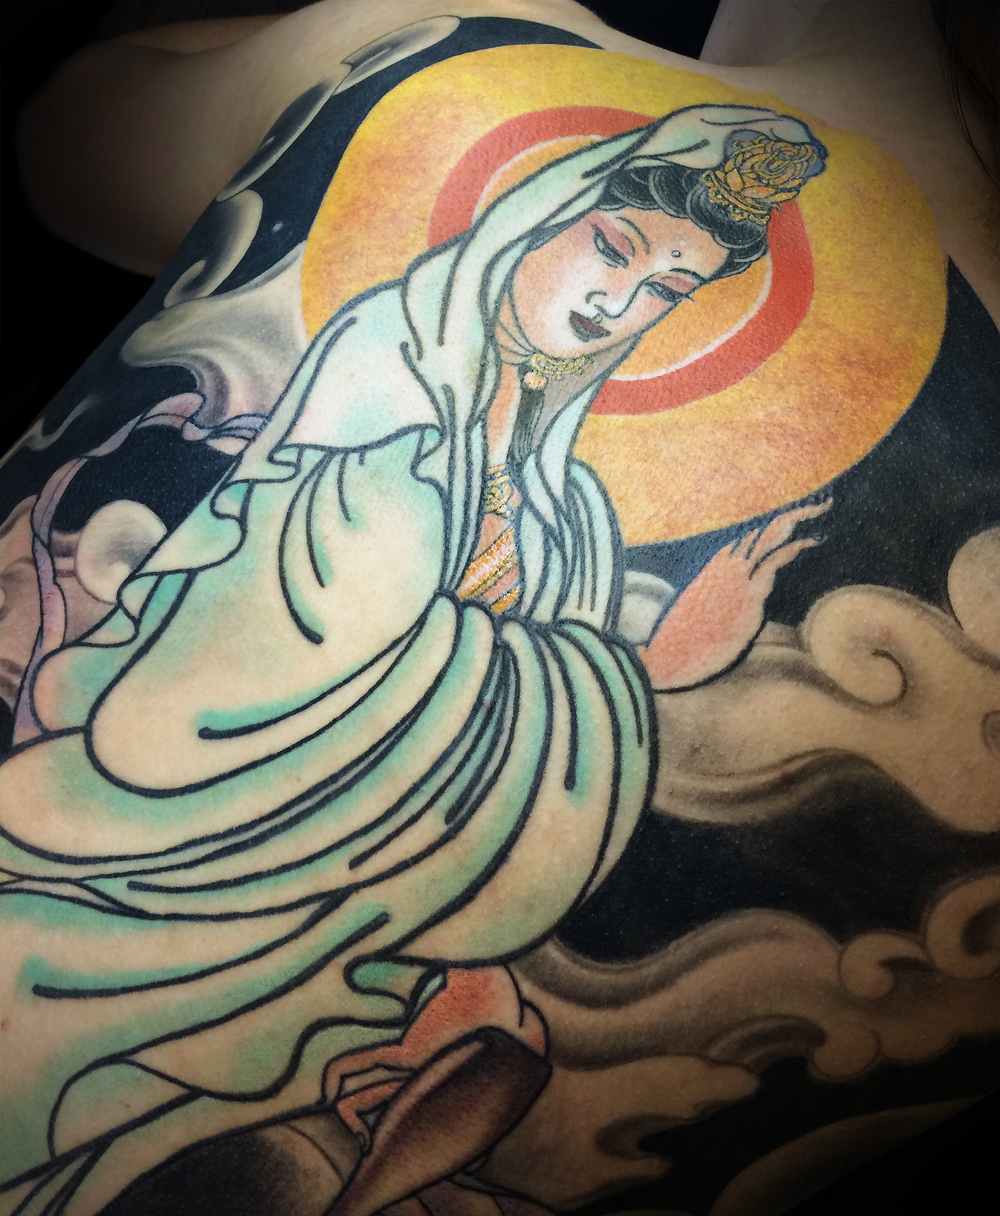 asian-lady-Tattoo -LA-LosAngeles-besttattoo-besttattooartist-besttattooartists-top-pictures-images-photo-tat-ink-inked-bigboy-guestartist-rabblerousertattoo